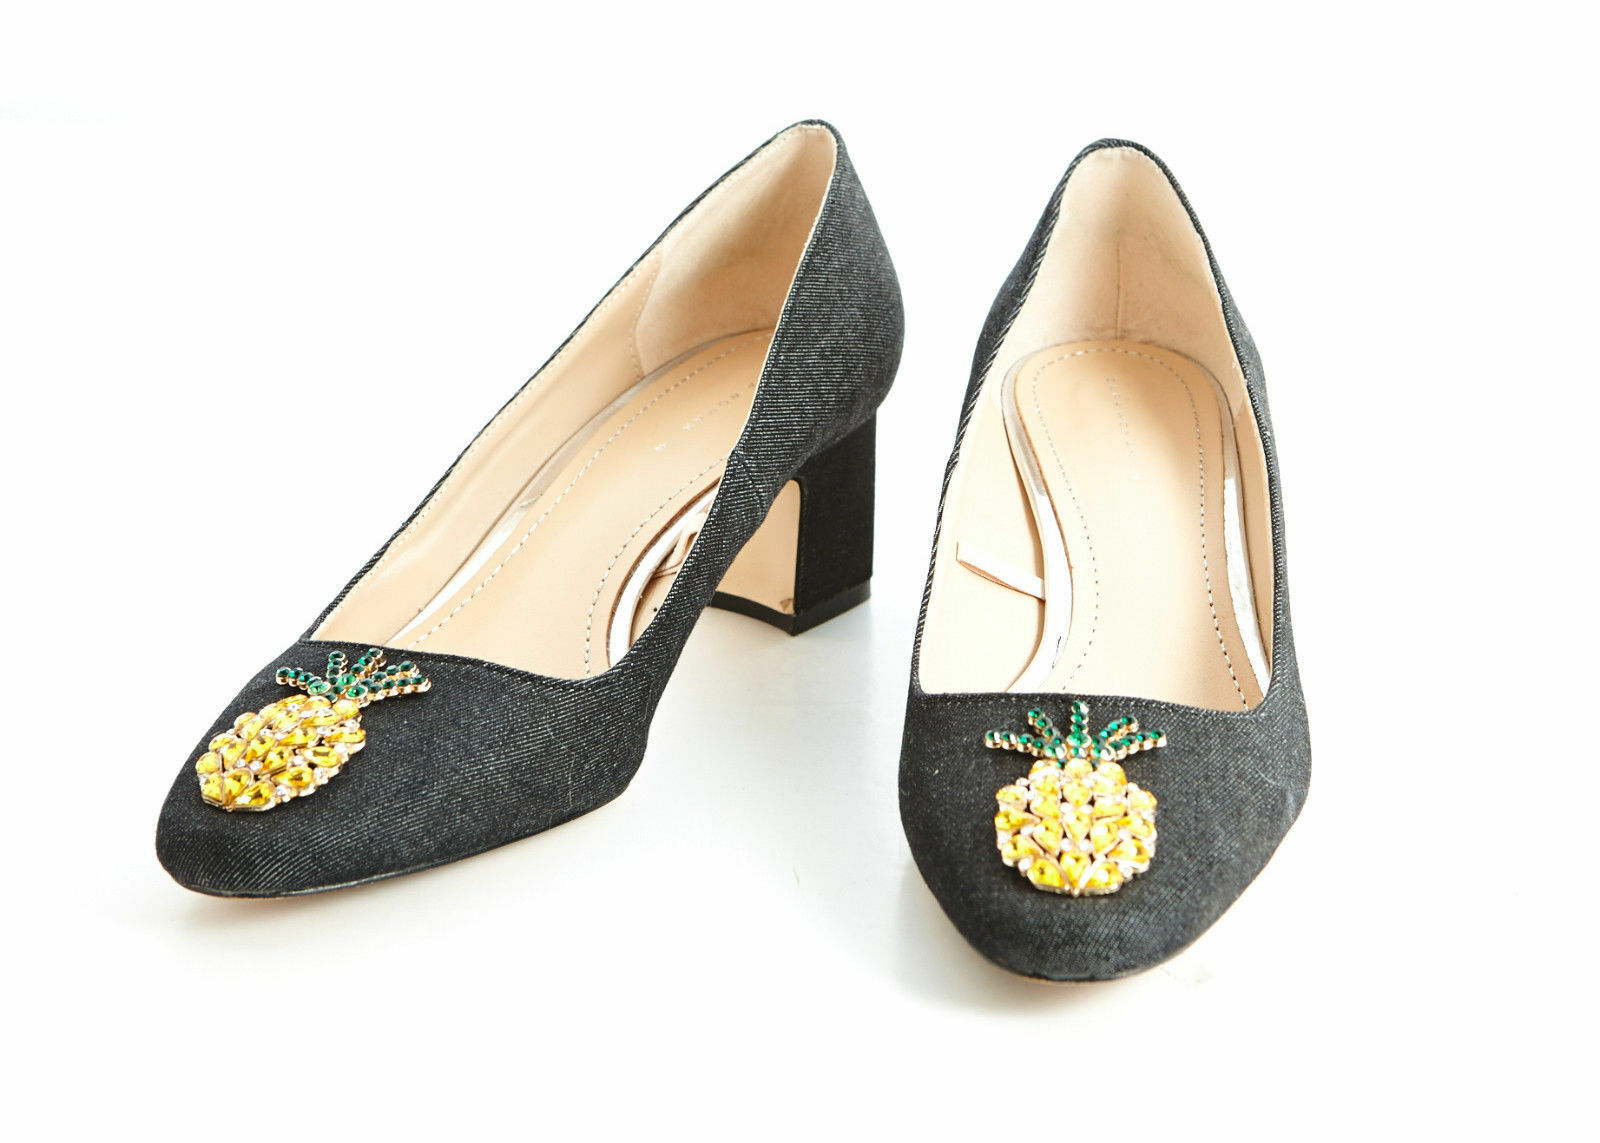 Zara Mid Heel Denim Schuhes Uk4/37 With Pineapple Detail Größe Uk4/37 Schuhes BNWT 9165d9